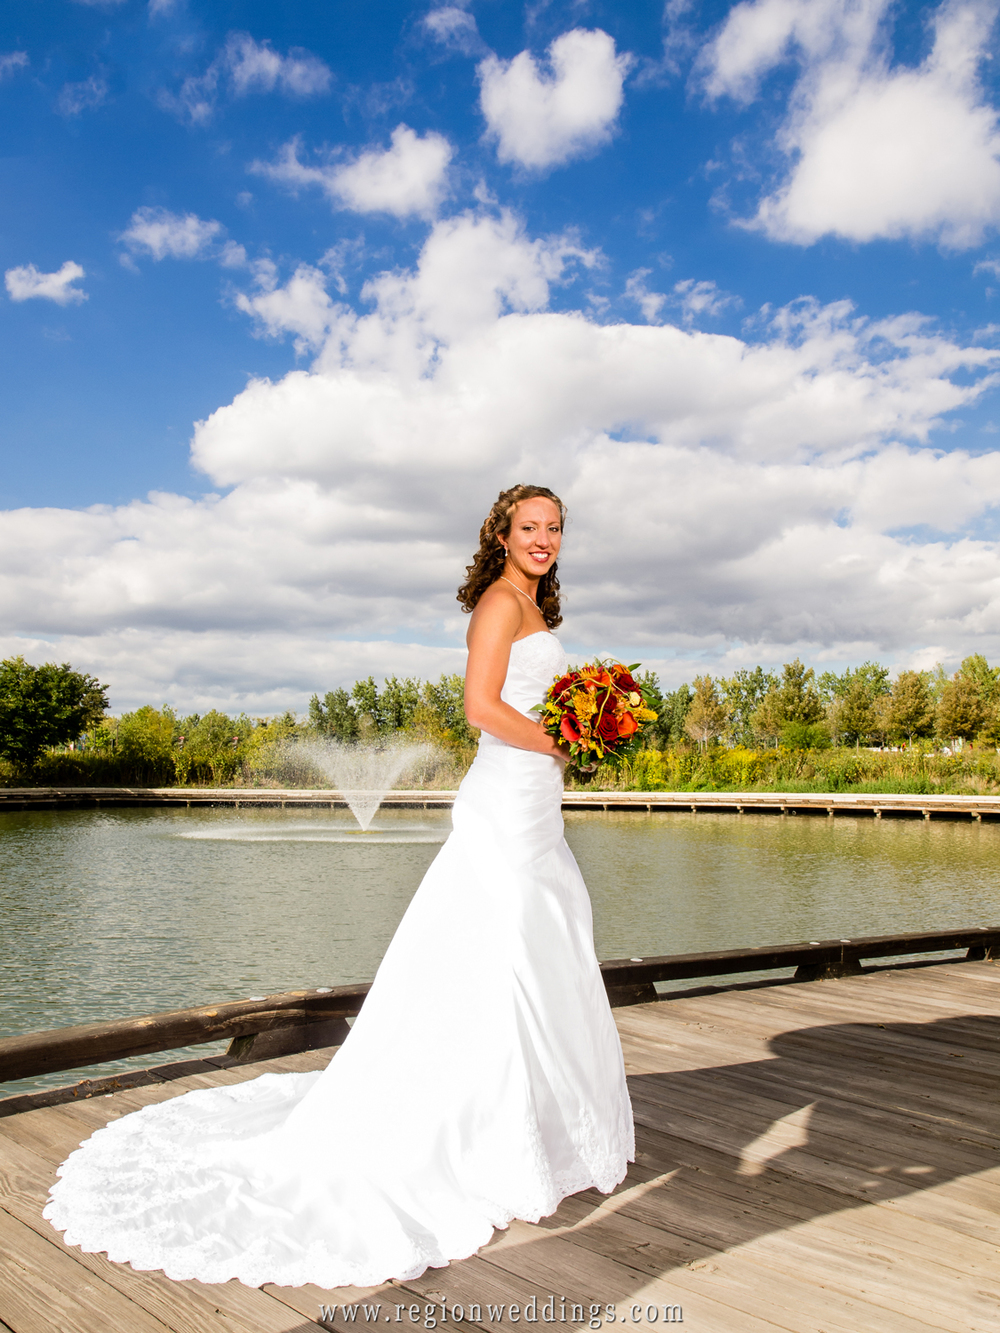 Bride poses with her bouquet of flowers with a fountain behind her and a beautiful blue sky.